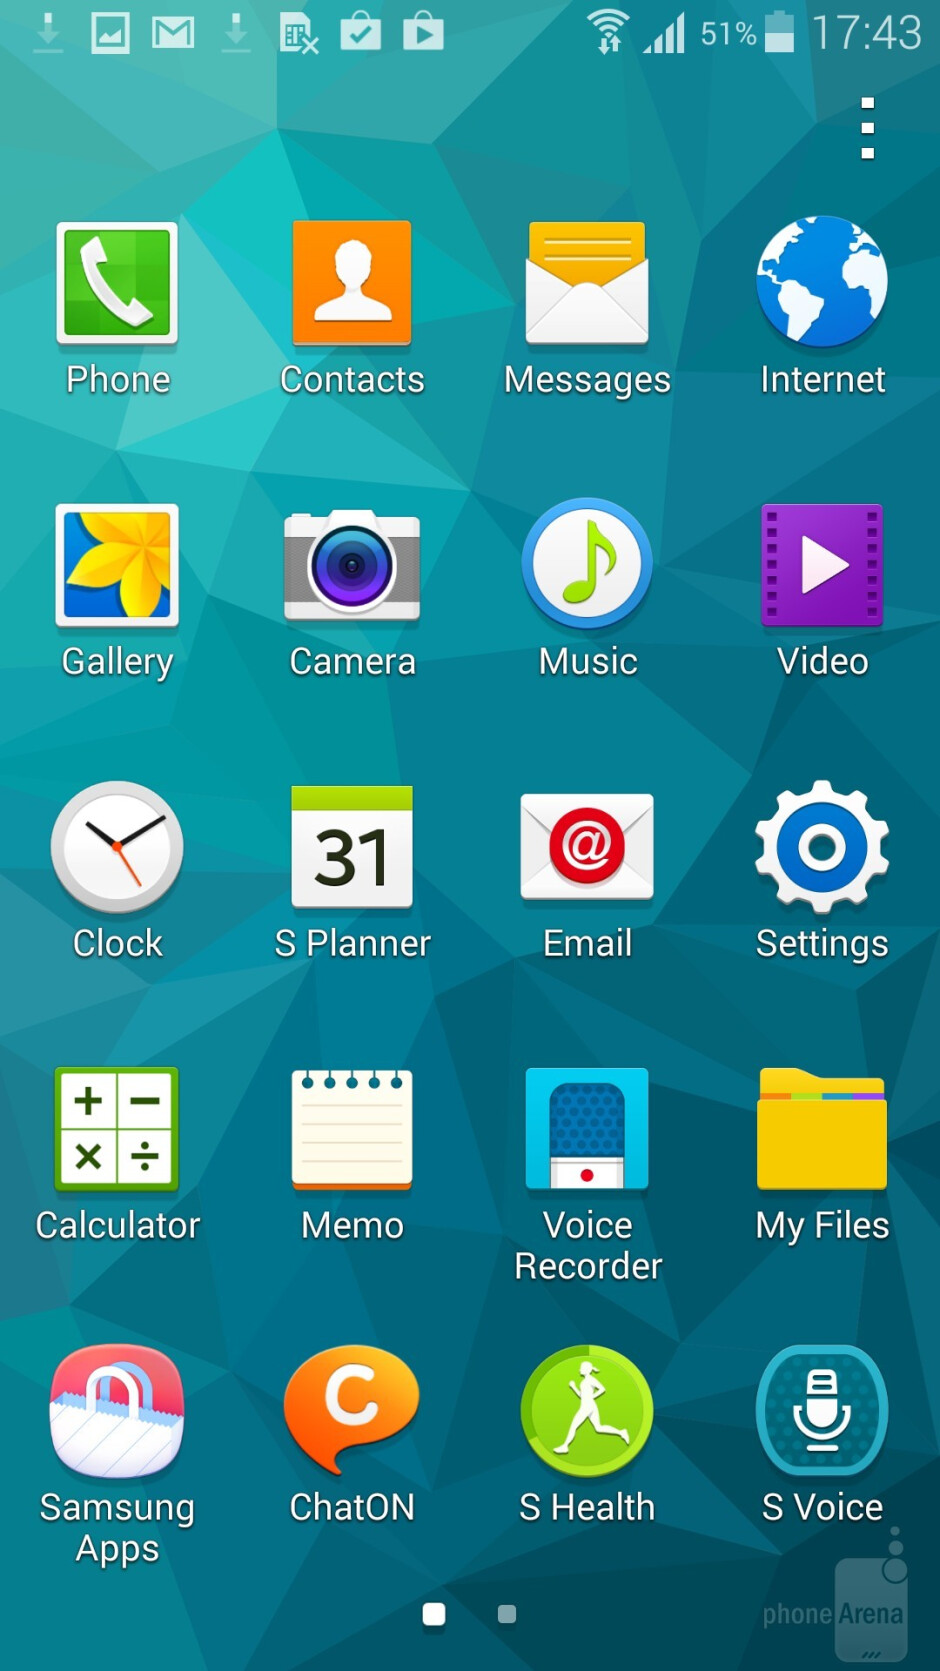 UI of the Samsung Galaxy S5 - LG G3 vs Samsung Galaxy S5